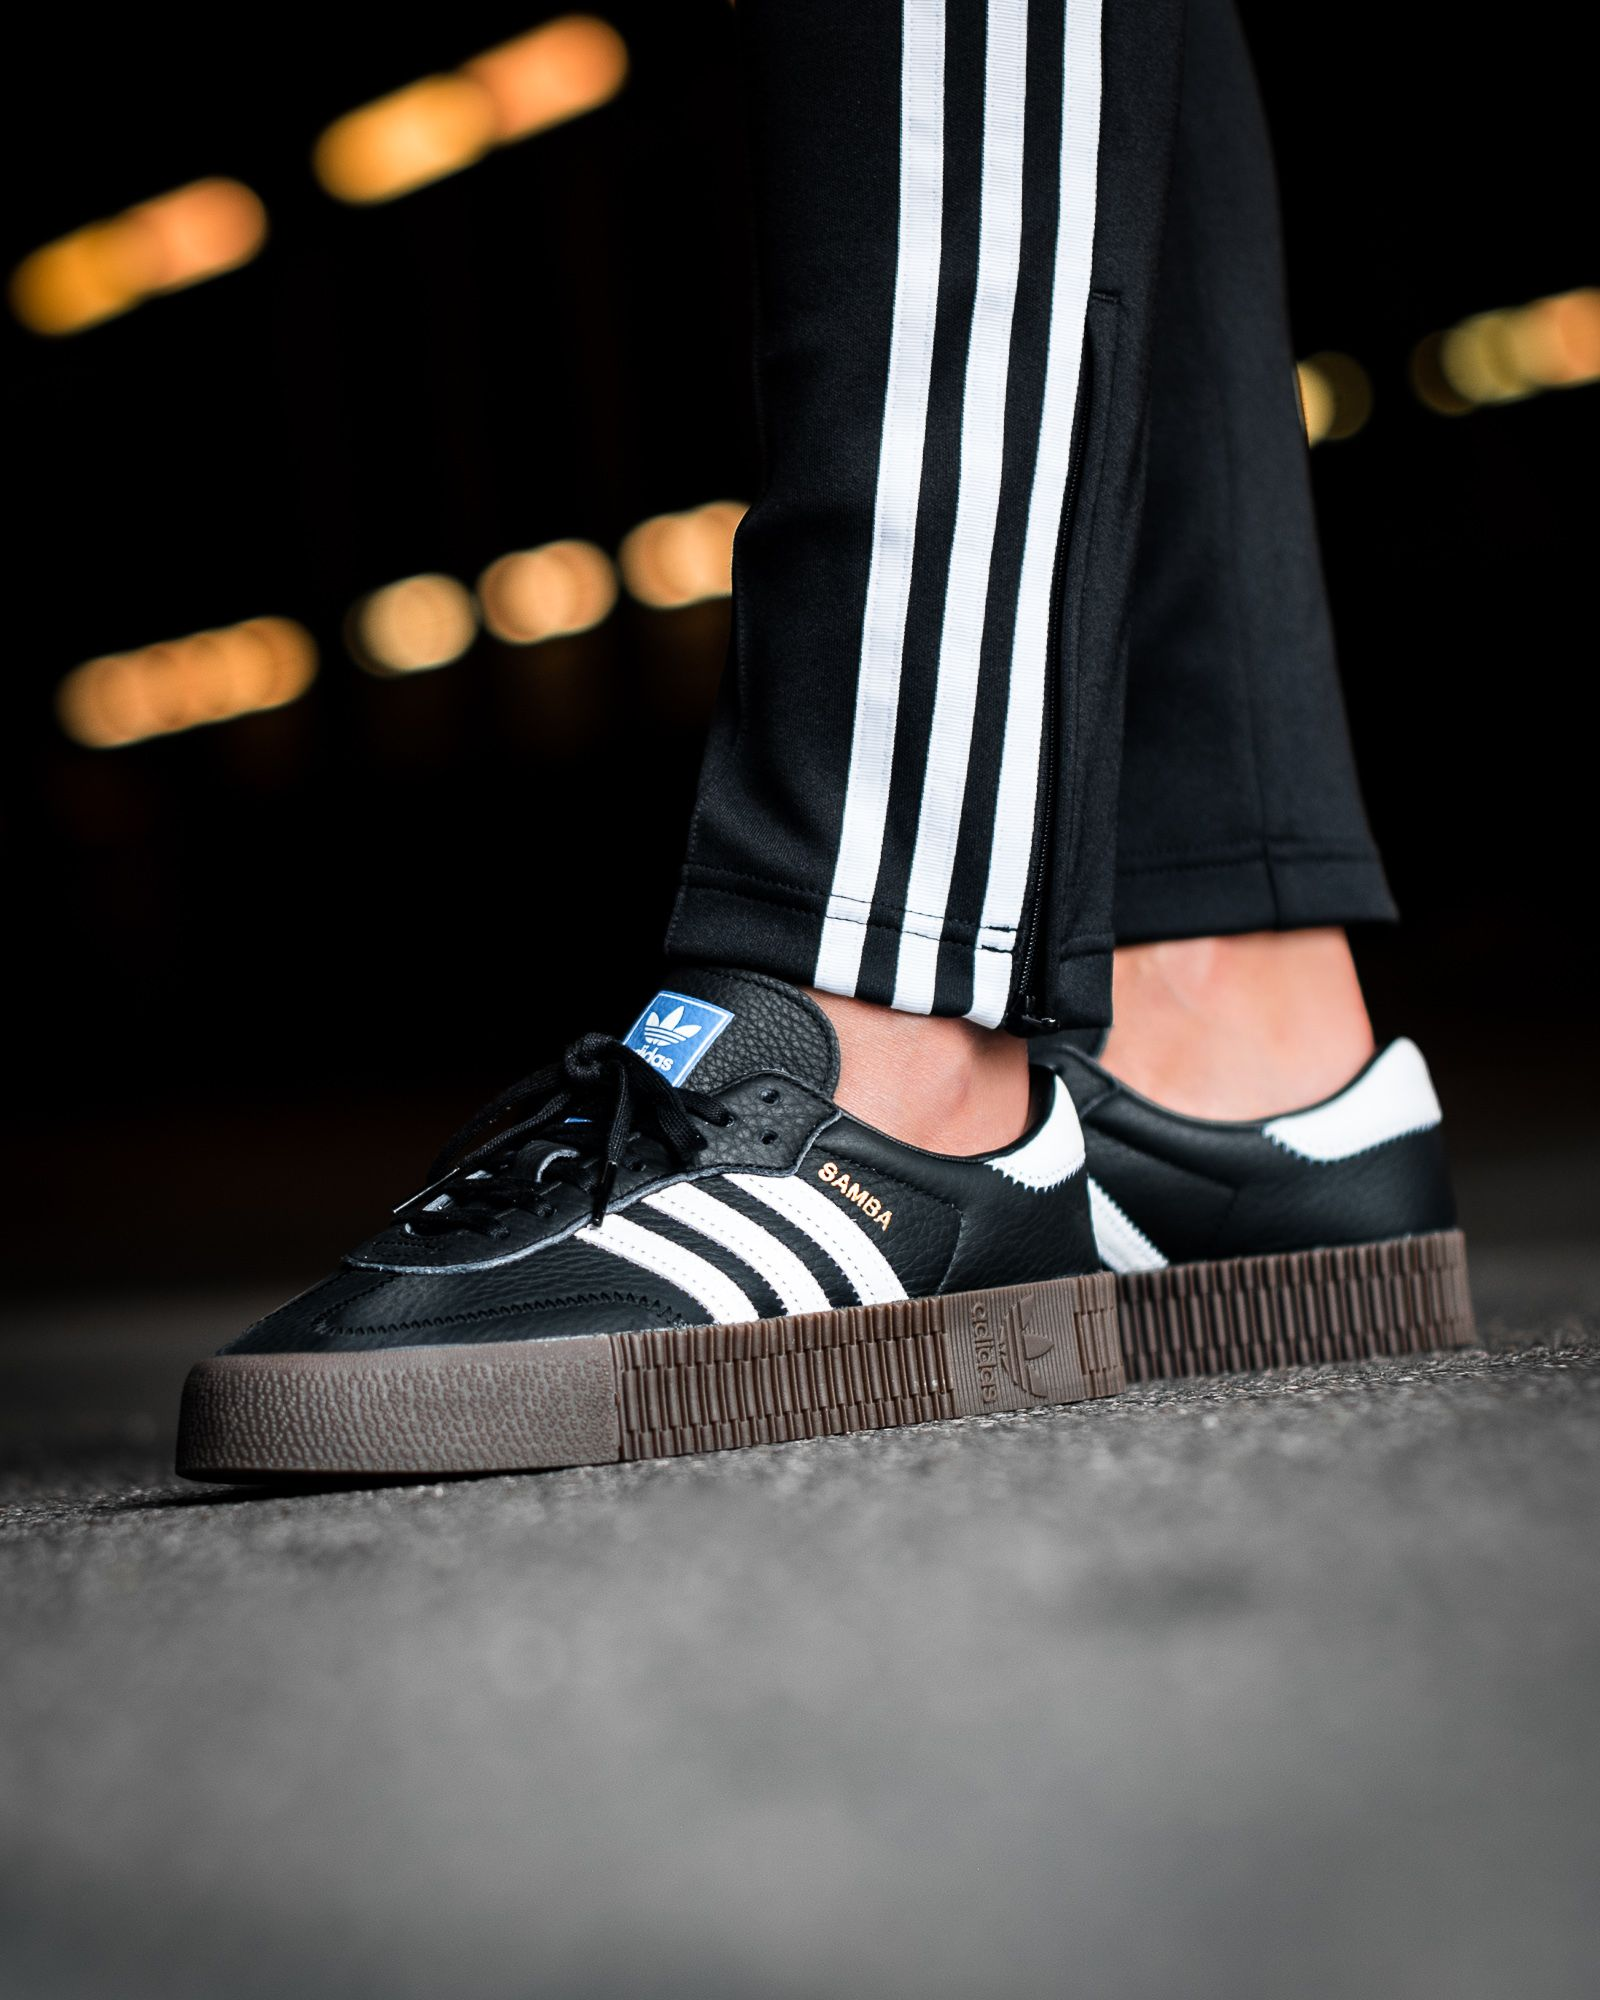 new style 9848f 3bc76 Adidas is reaching new heights with the Adidas